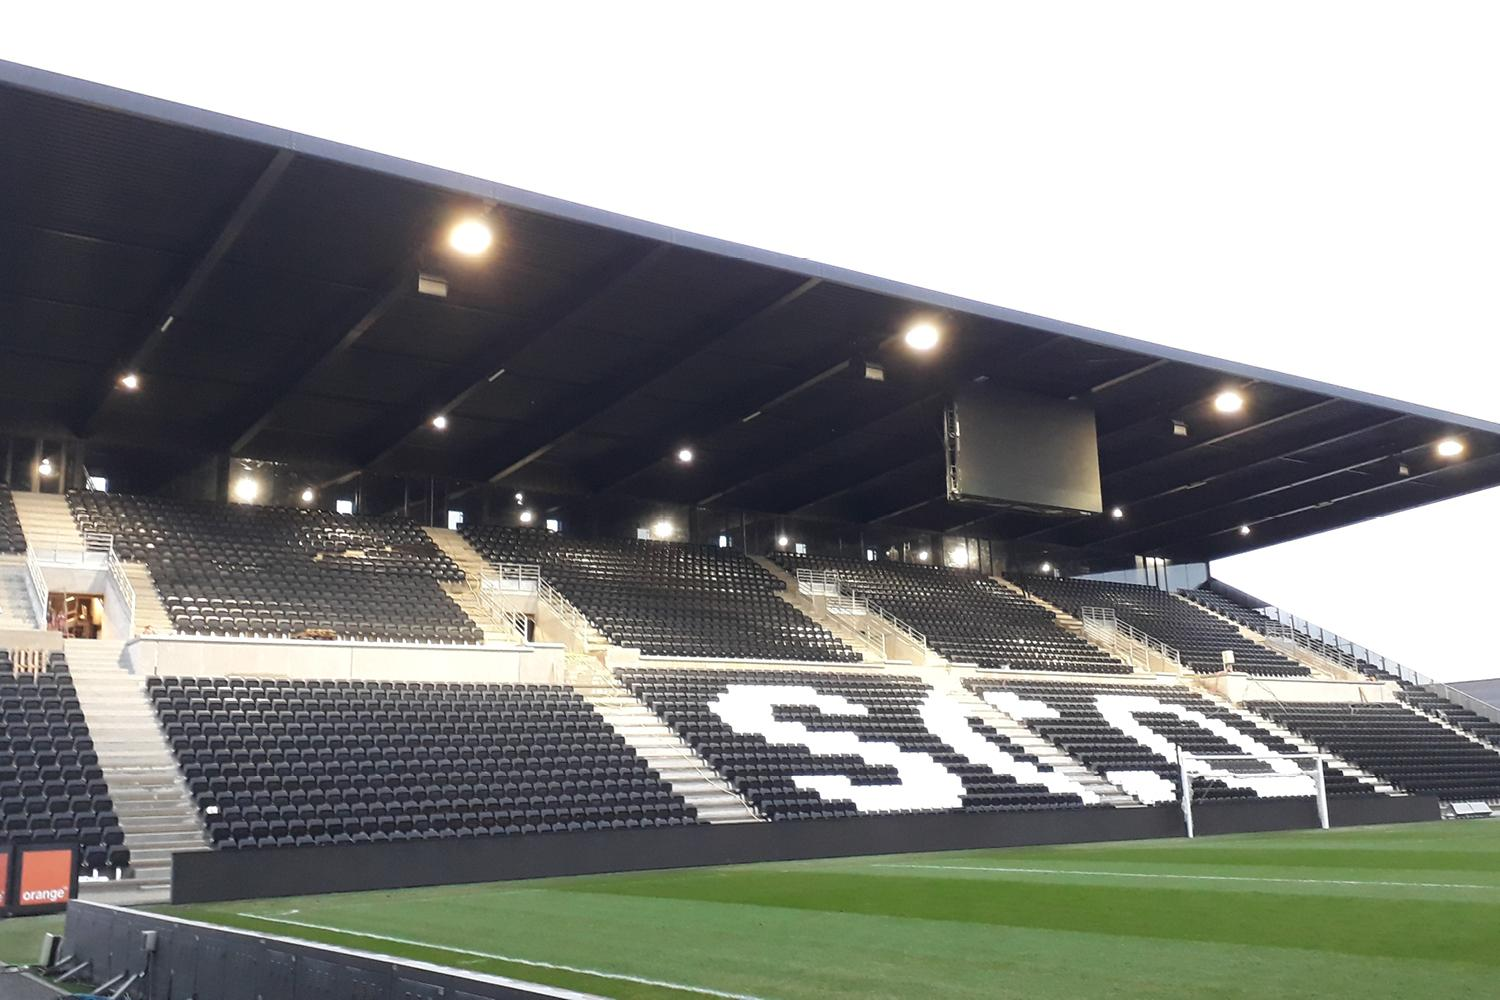 Stade angers smb5